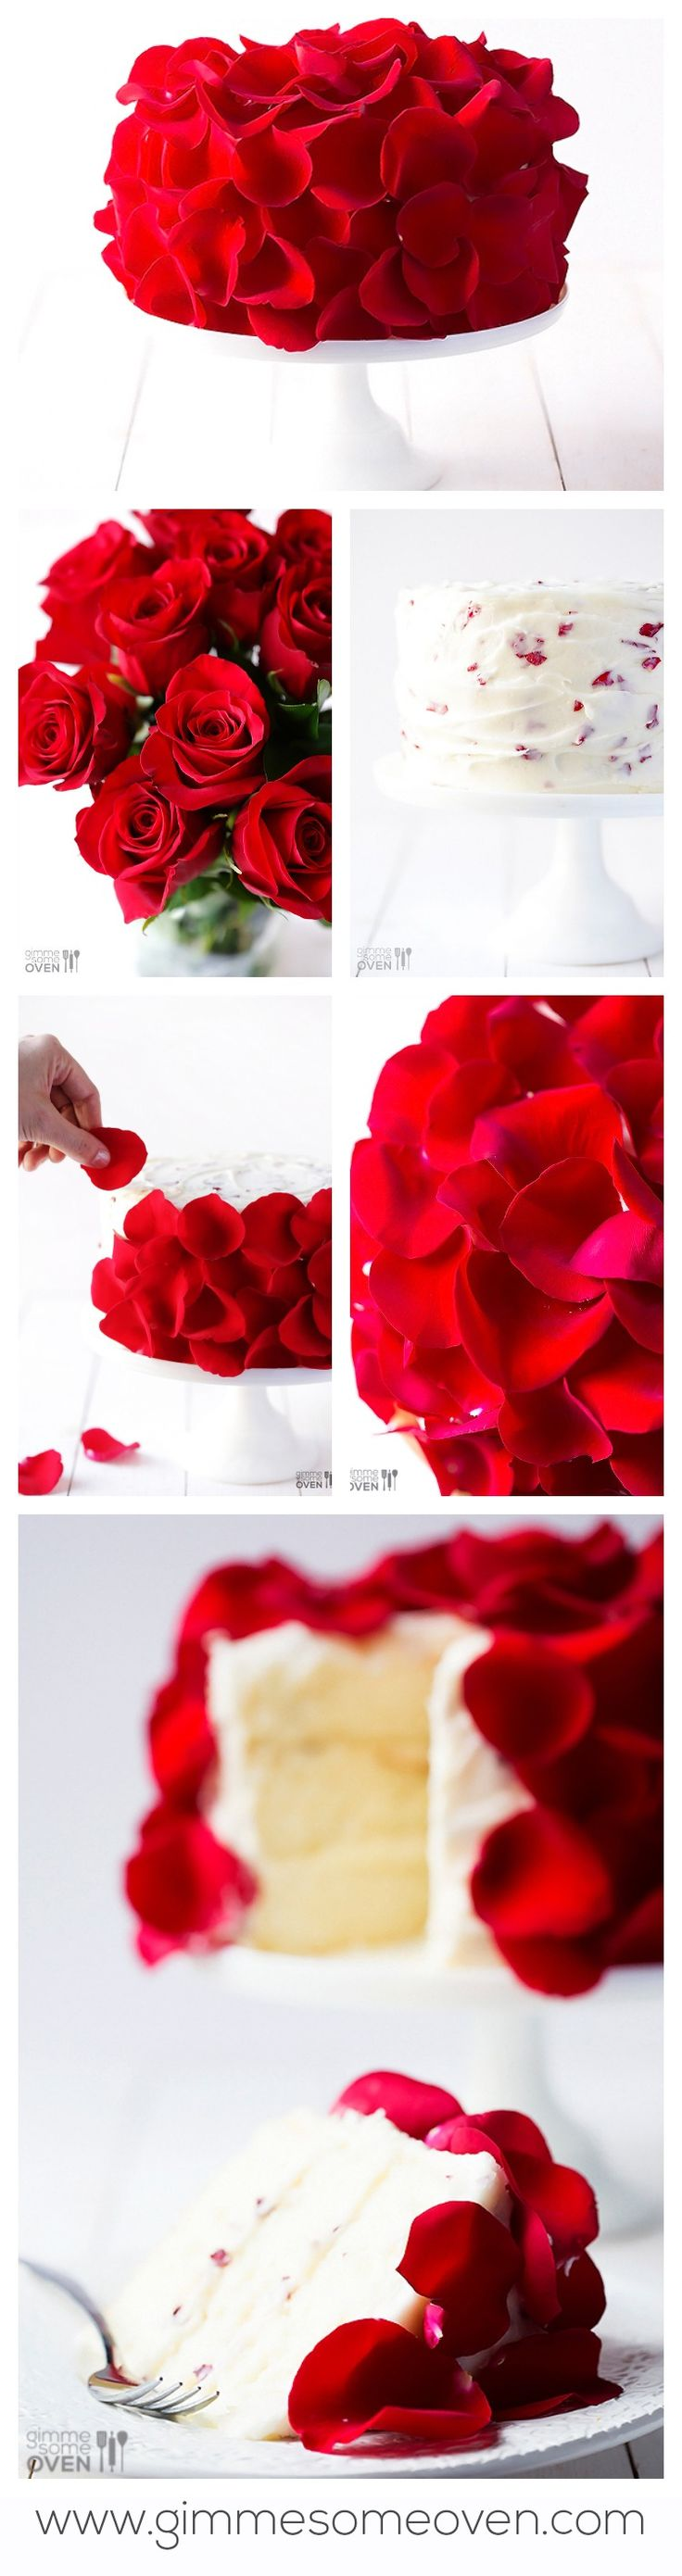 Learn how to make a beautiful fresh rose cake with real (edible) roses mixed into and on top of the frosting! gimmesomeoven.com #valentines #roses #cake